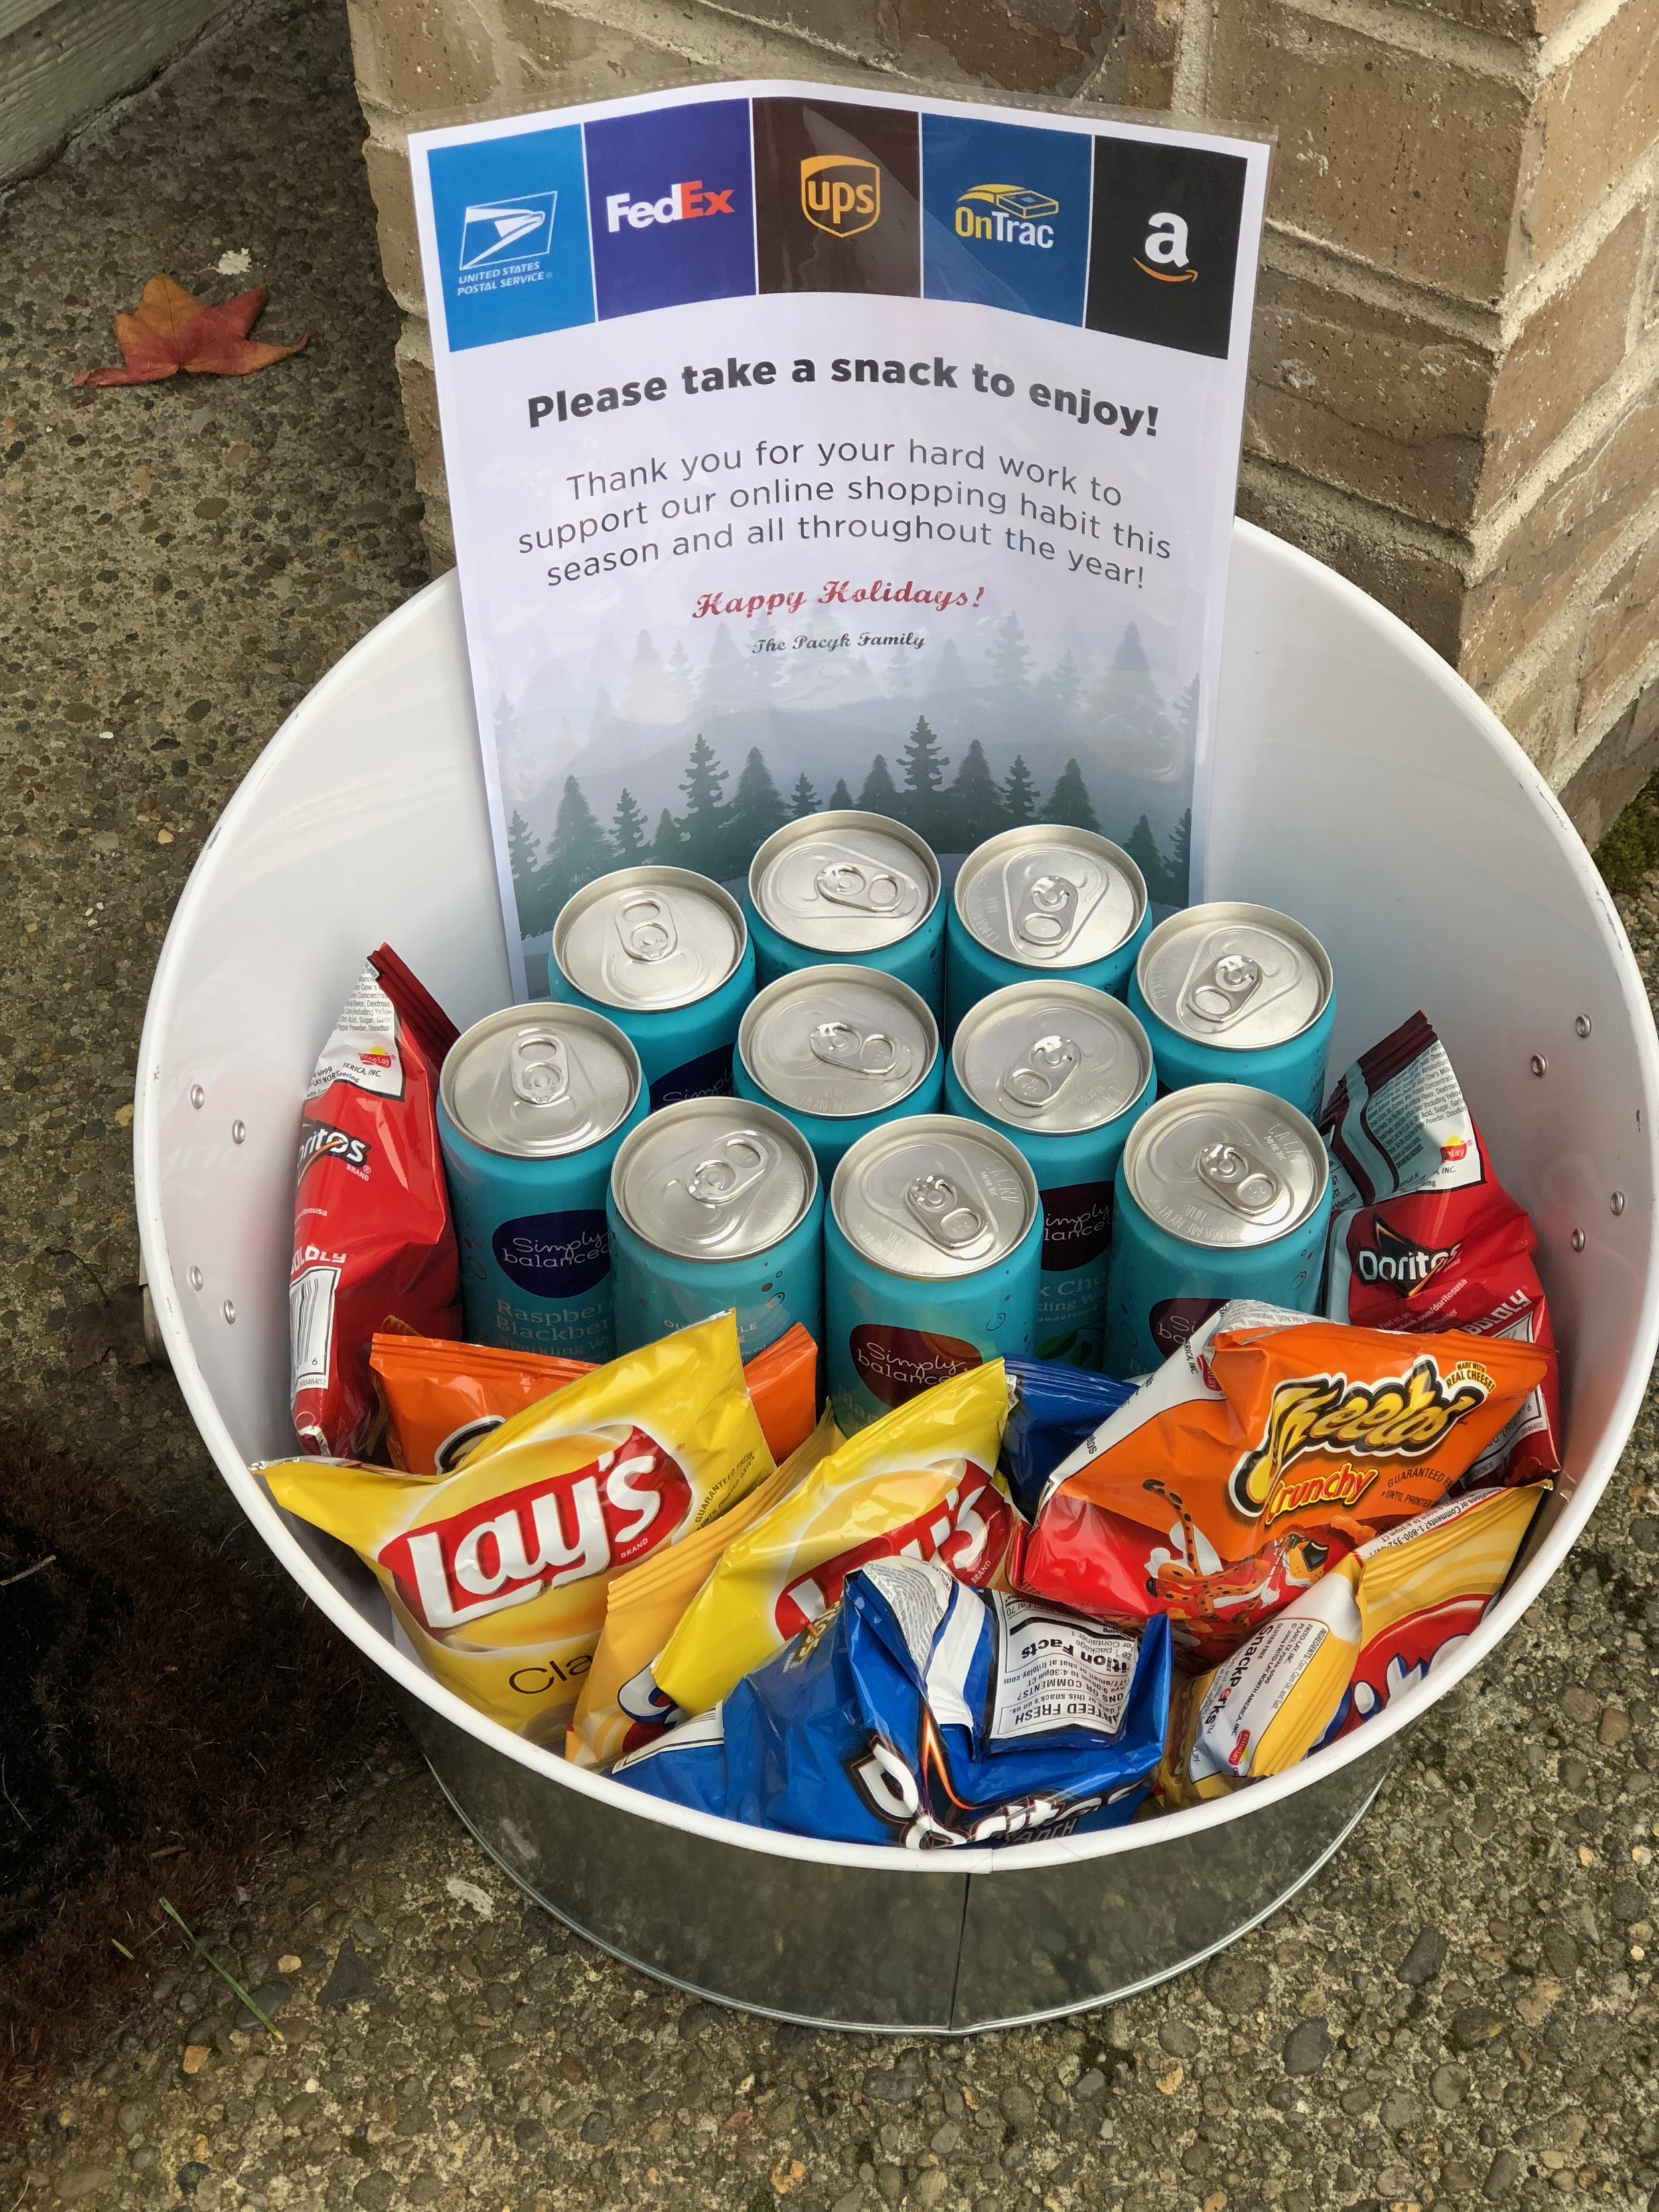 Add a cooler with drinks and snacks to your front porch to thank drivers for their hard work all year long.